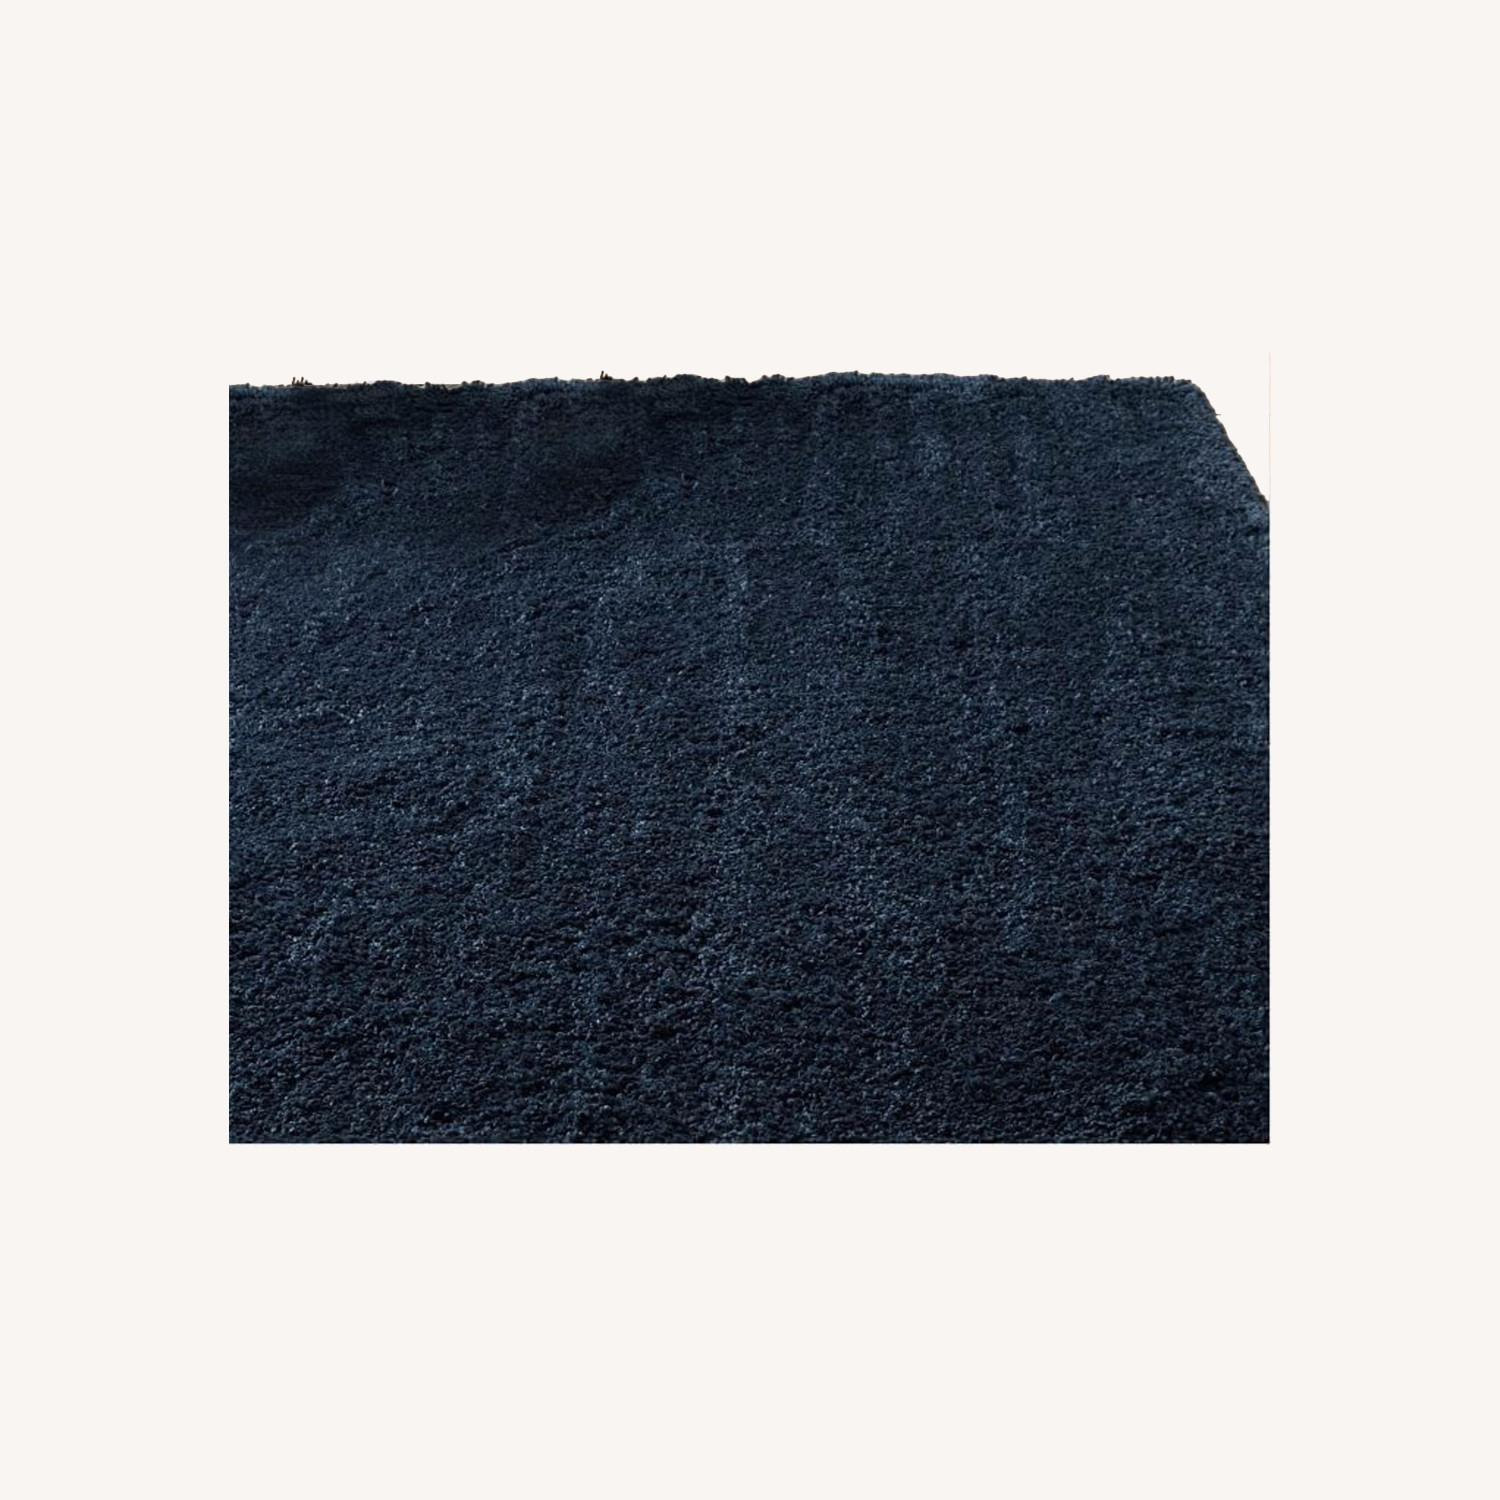 West Elm Cozy Plush Rug - image-0